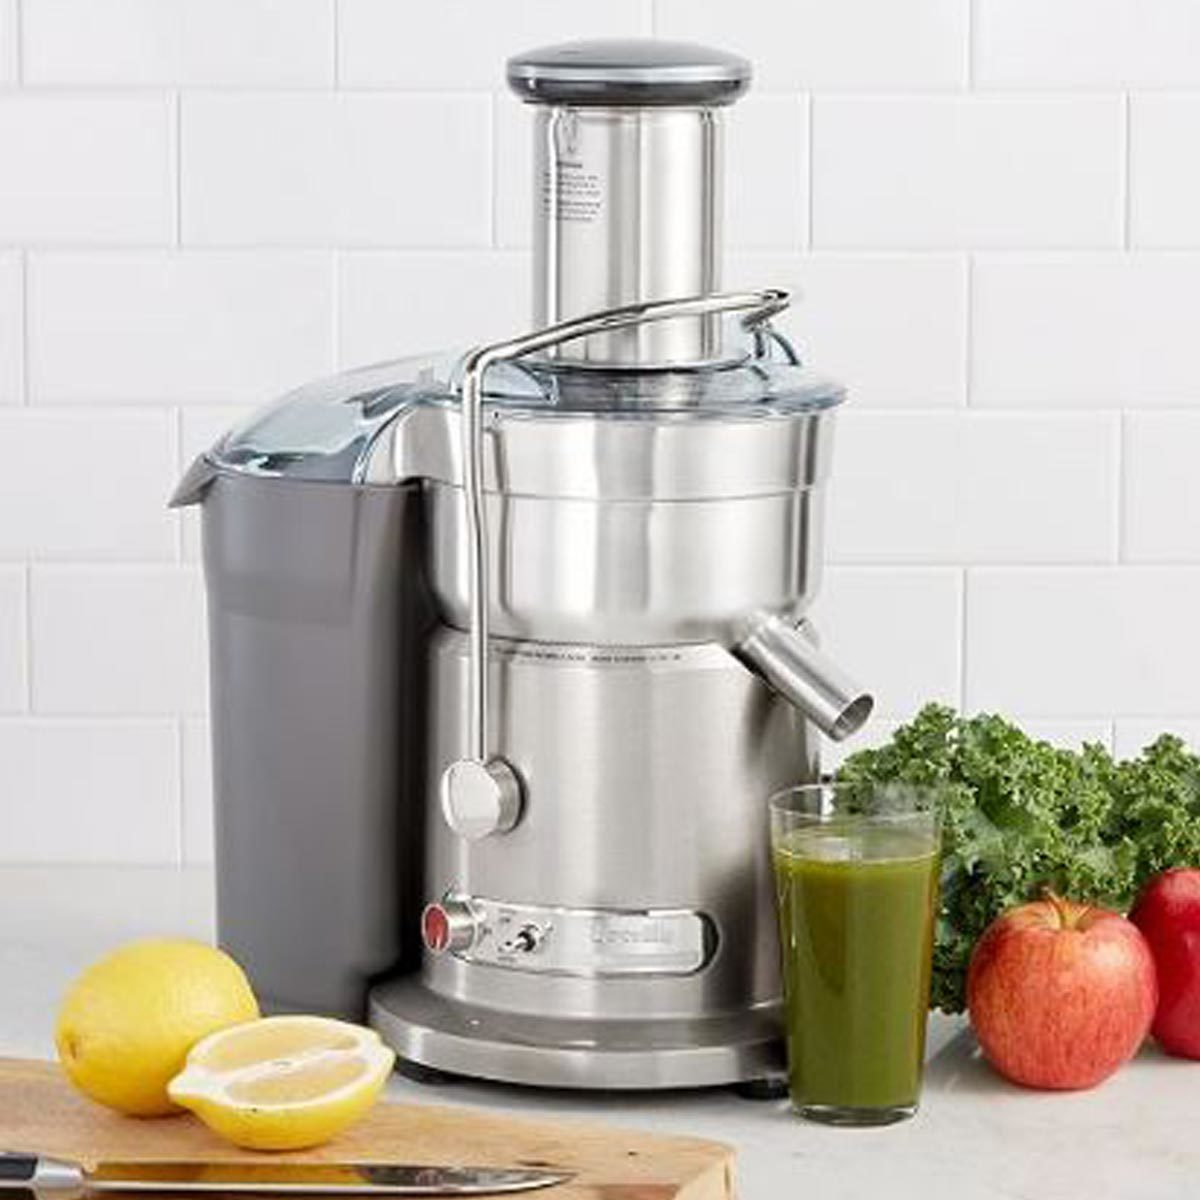 Chrome Breville juicer with cup of green juice and a lemon on a cutting board with knife photo